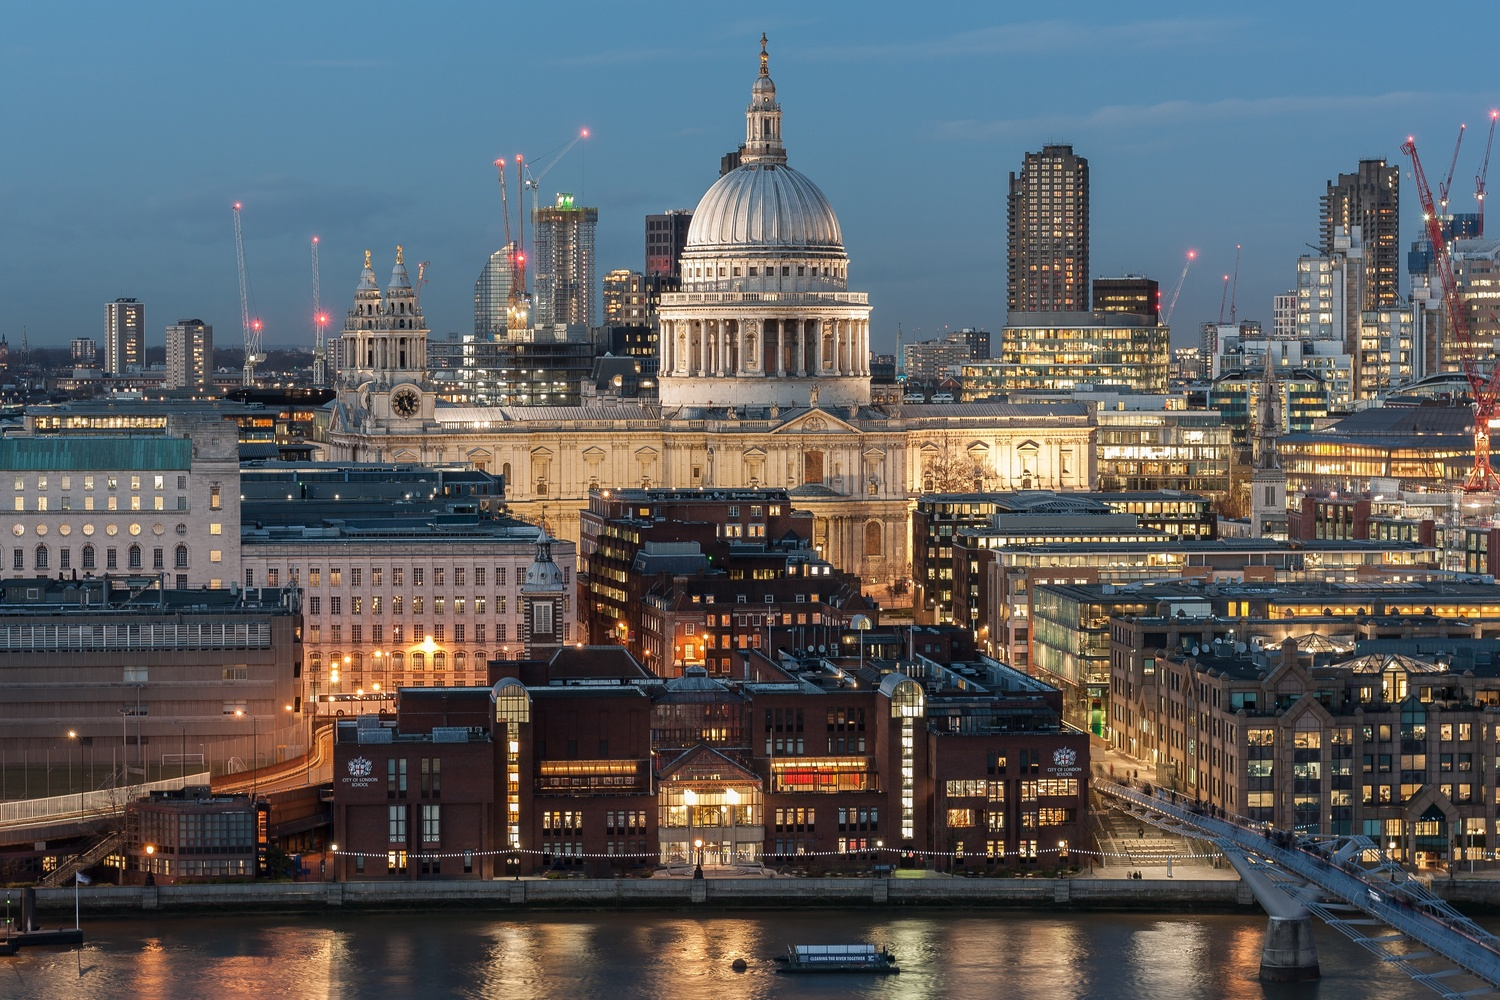 St. Paul's Cathedral  by Dorian Drozdowski